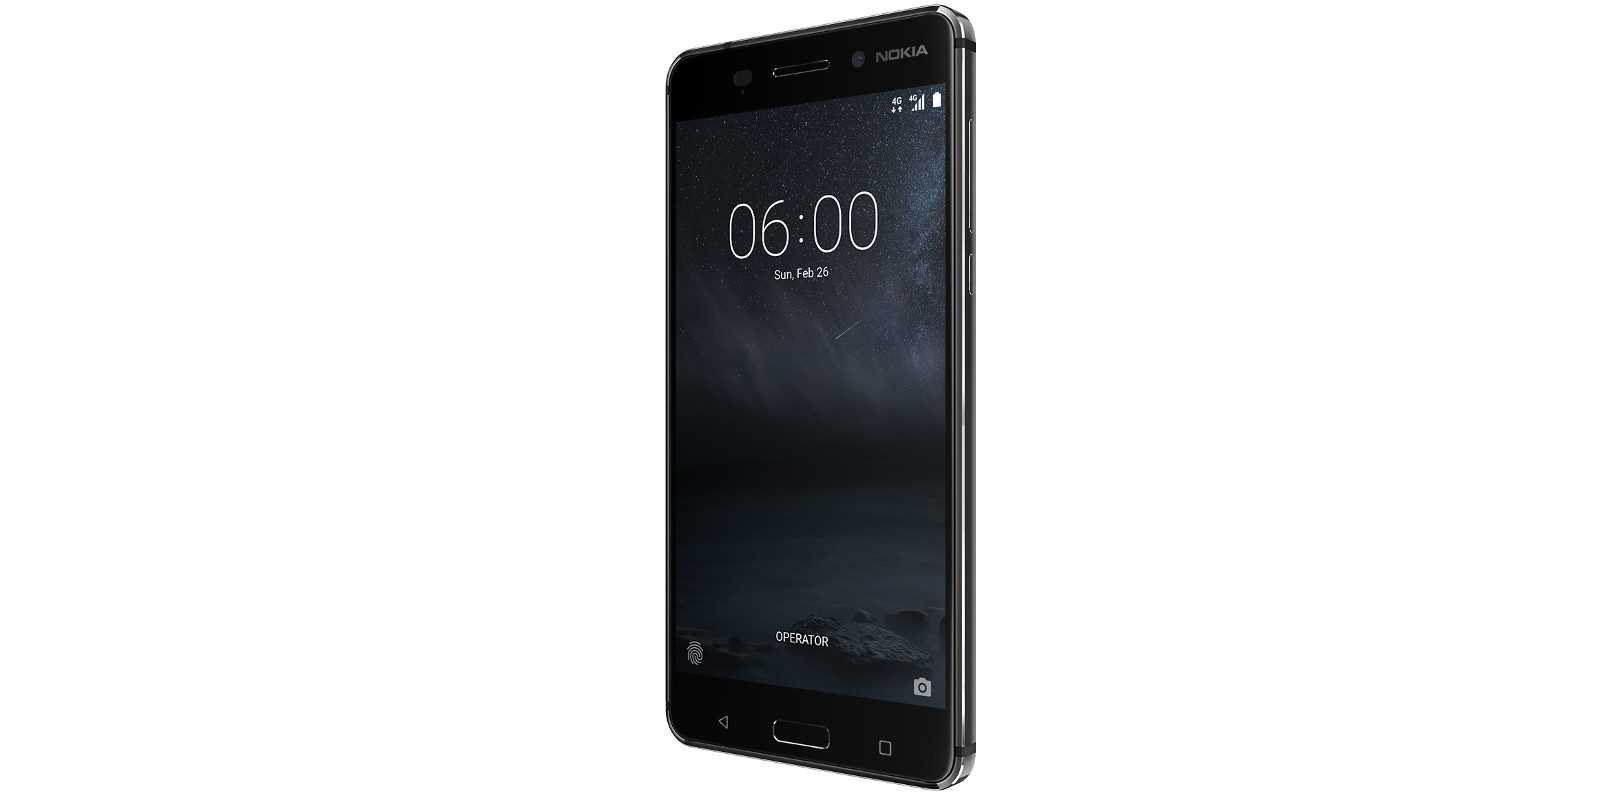 Nokia 6 Arte Black Video Nokia 6 Goes Global Arte Black Limited Edition Launched Too